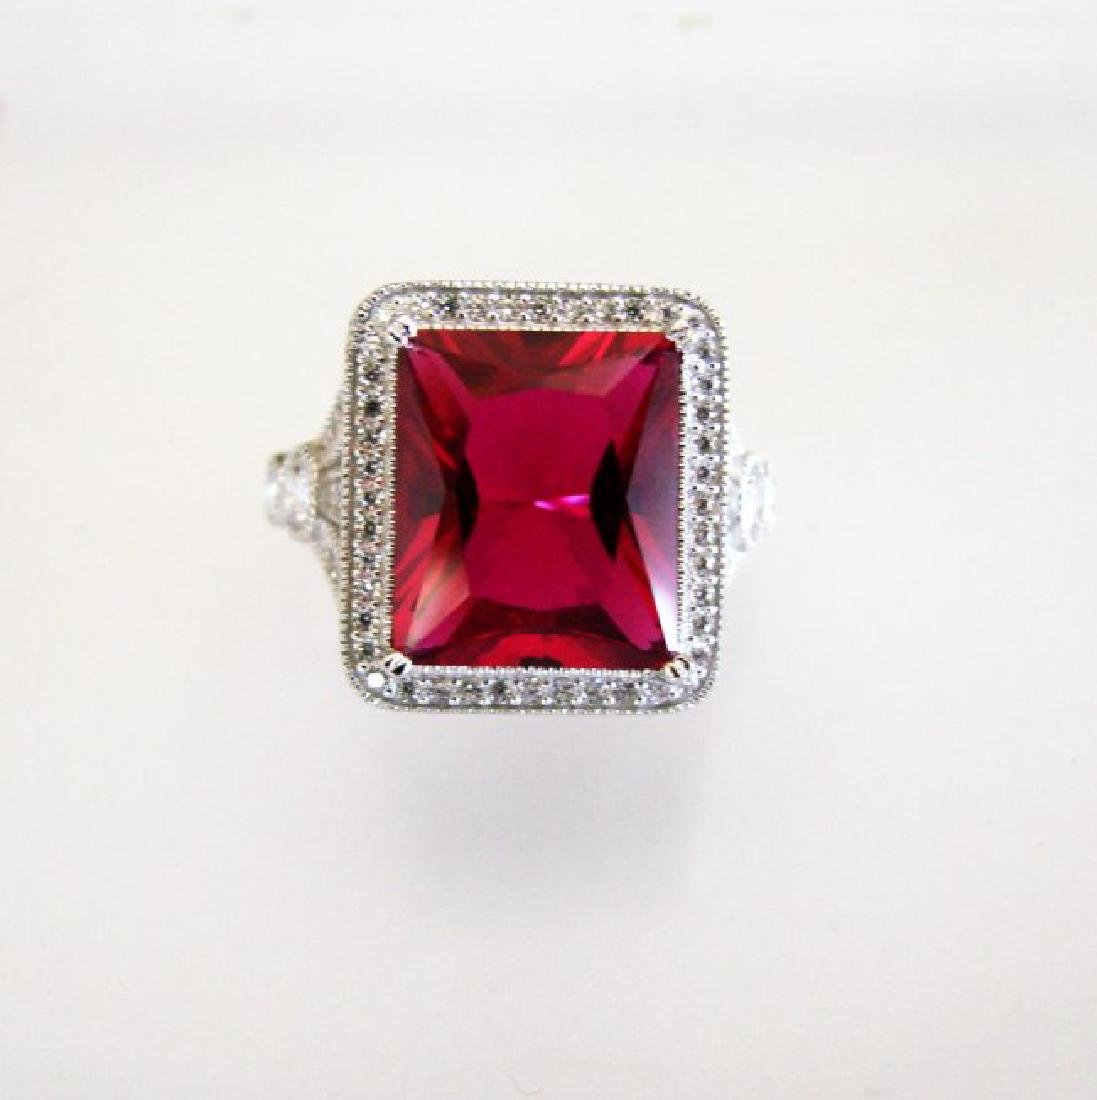 Creation Daimond Ruby Ring 8.61Ct 18k W/g Overlay